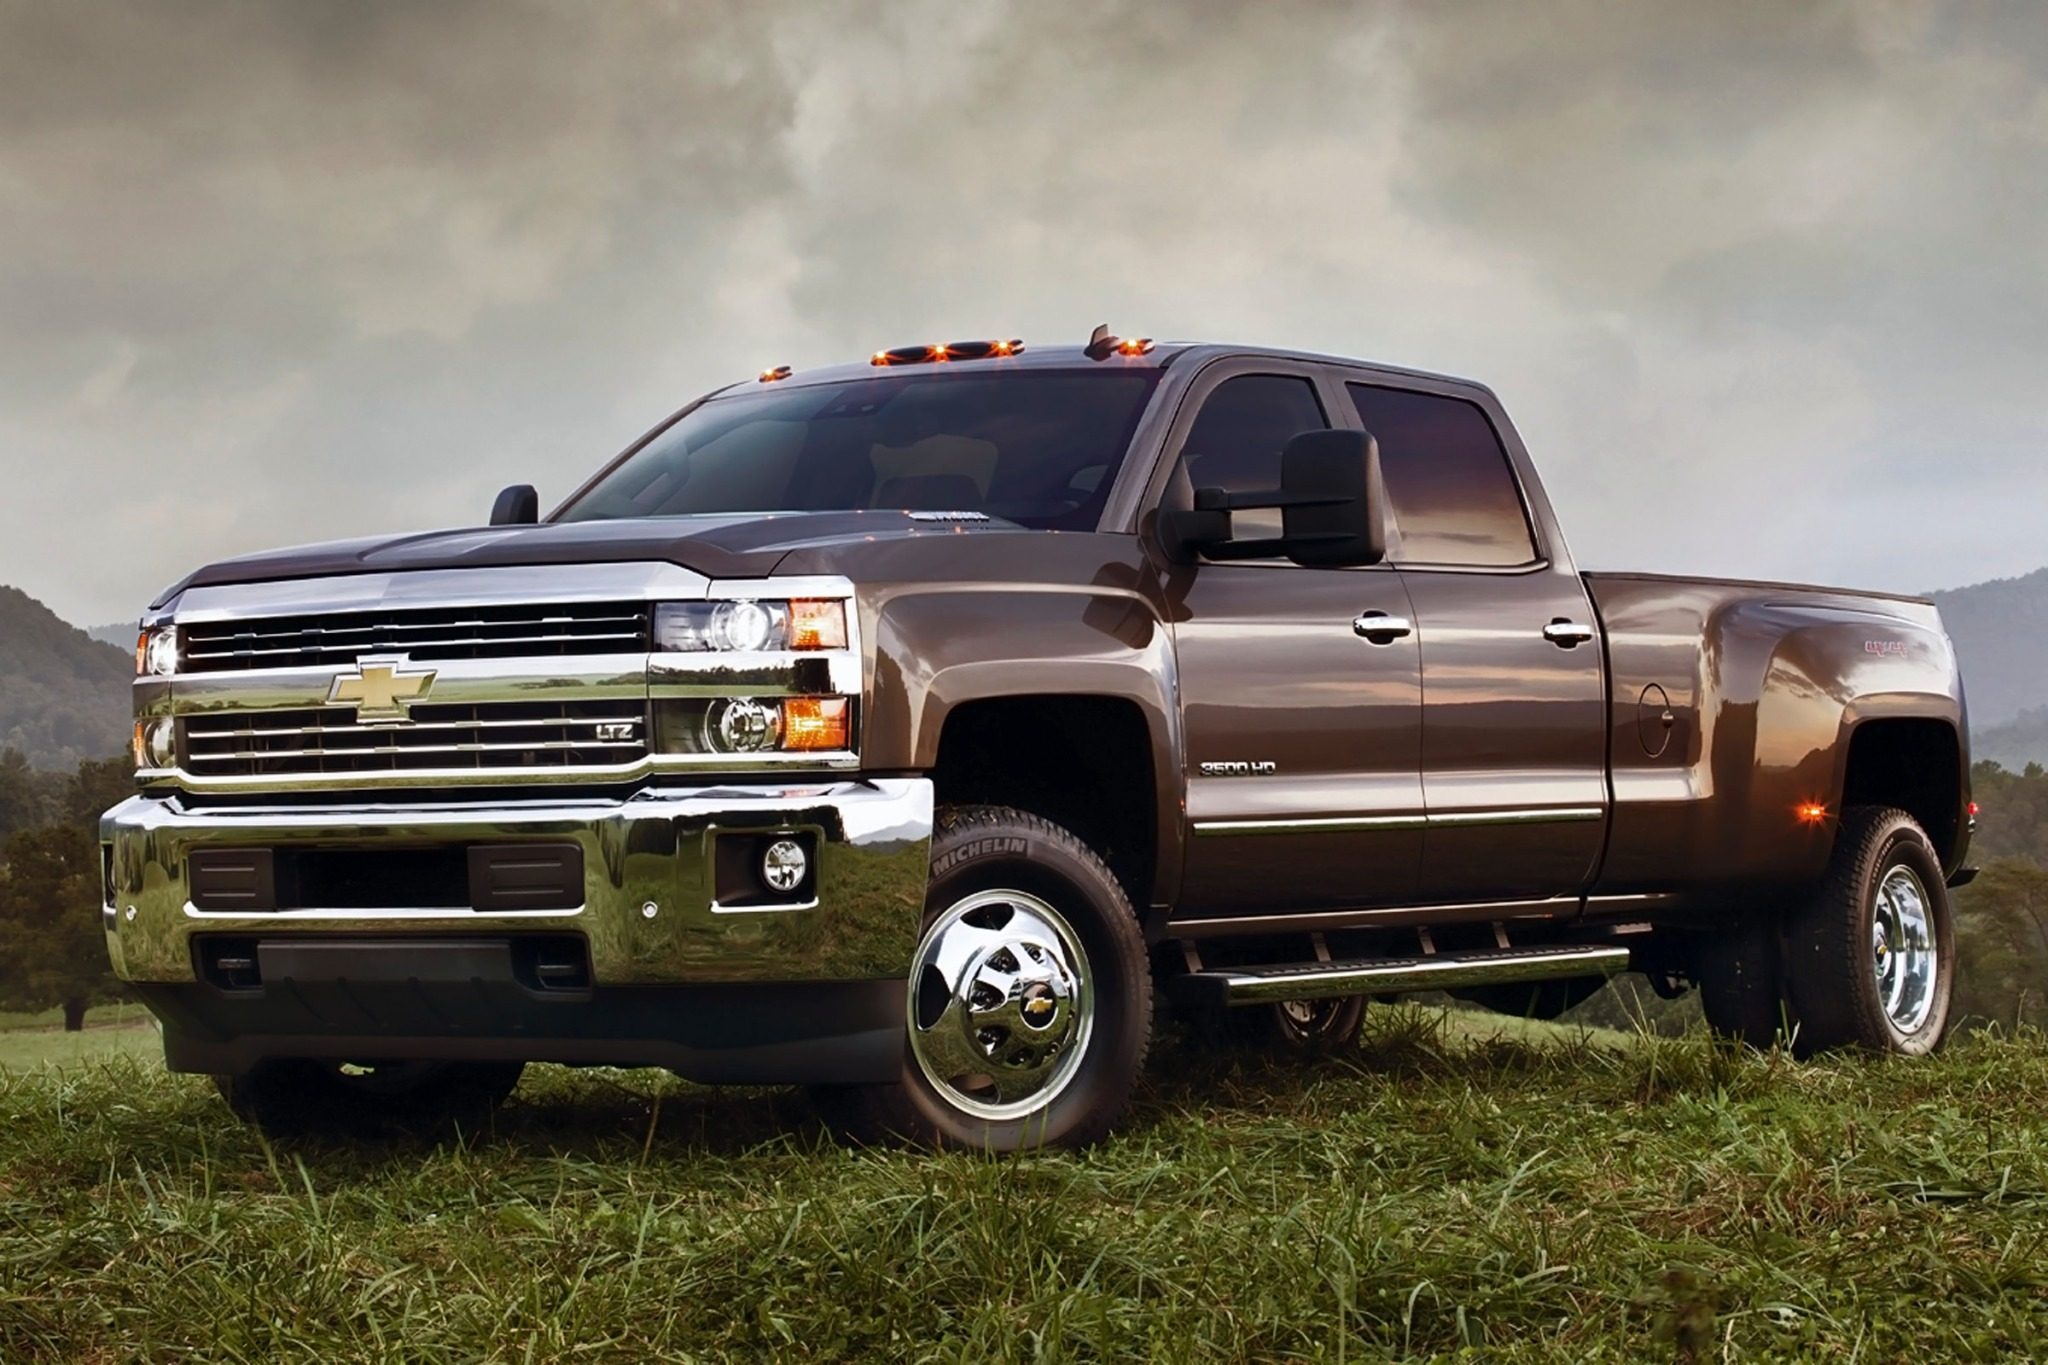 2017 chevrolet silverado 3500 hd ltz crew cab car photos catalog 2018. Black Bedroom Furniture Sets. Home Design Ideas